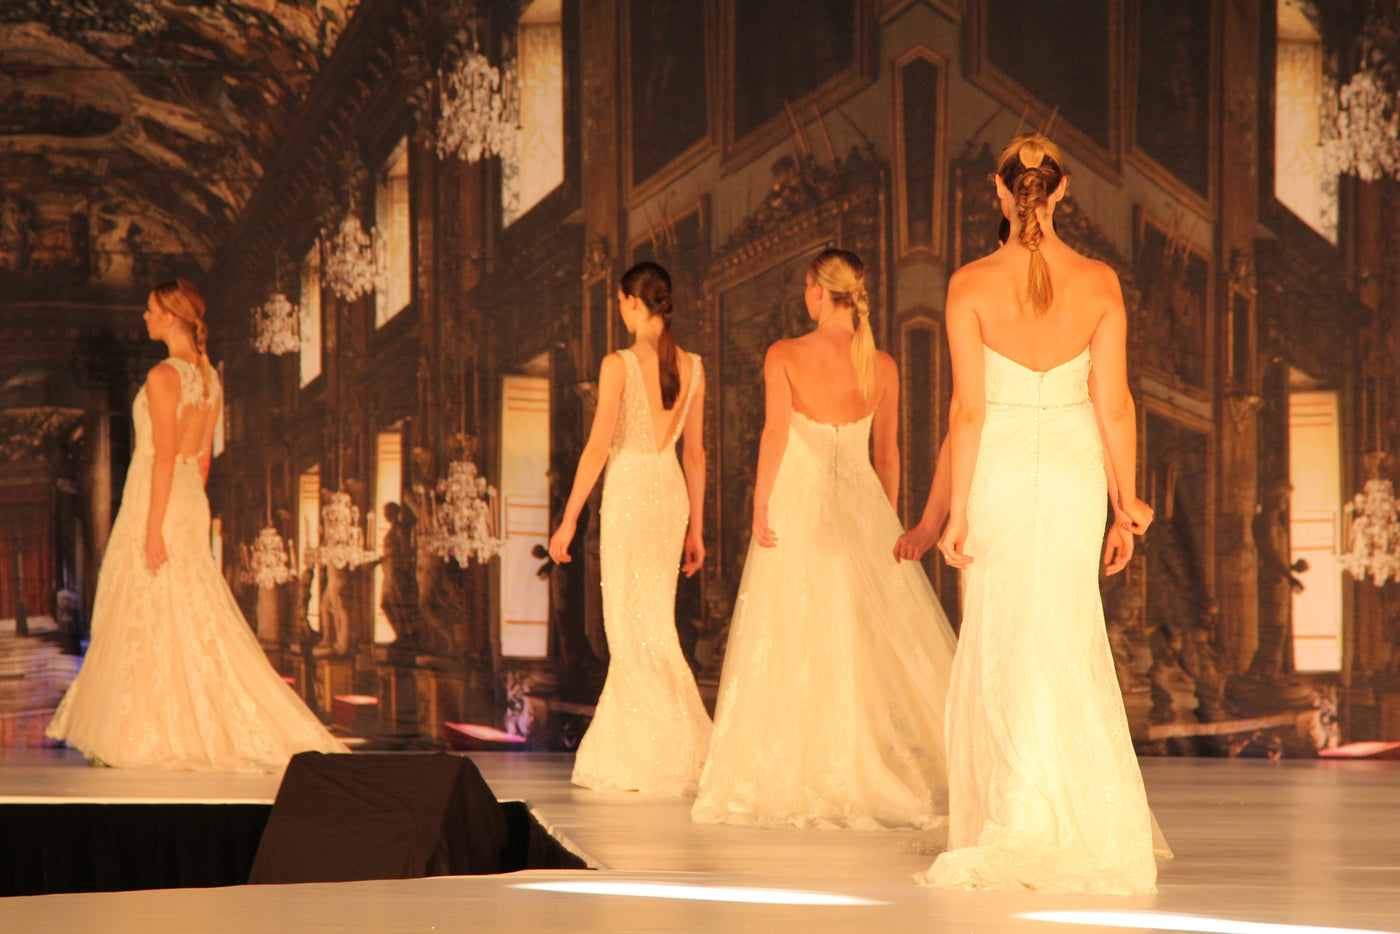 ENZOANI TAKES CENTRE STAGE AT THE ULTIMATE BRIDAL EVENT